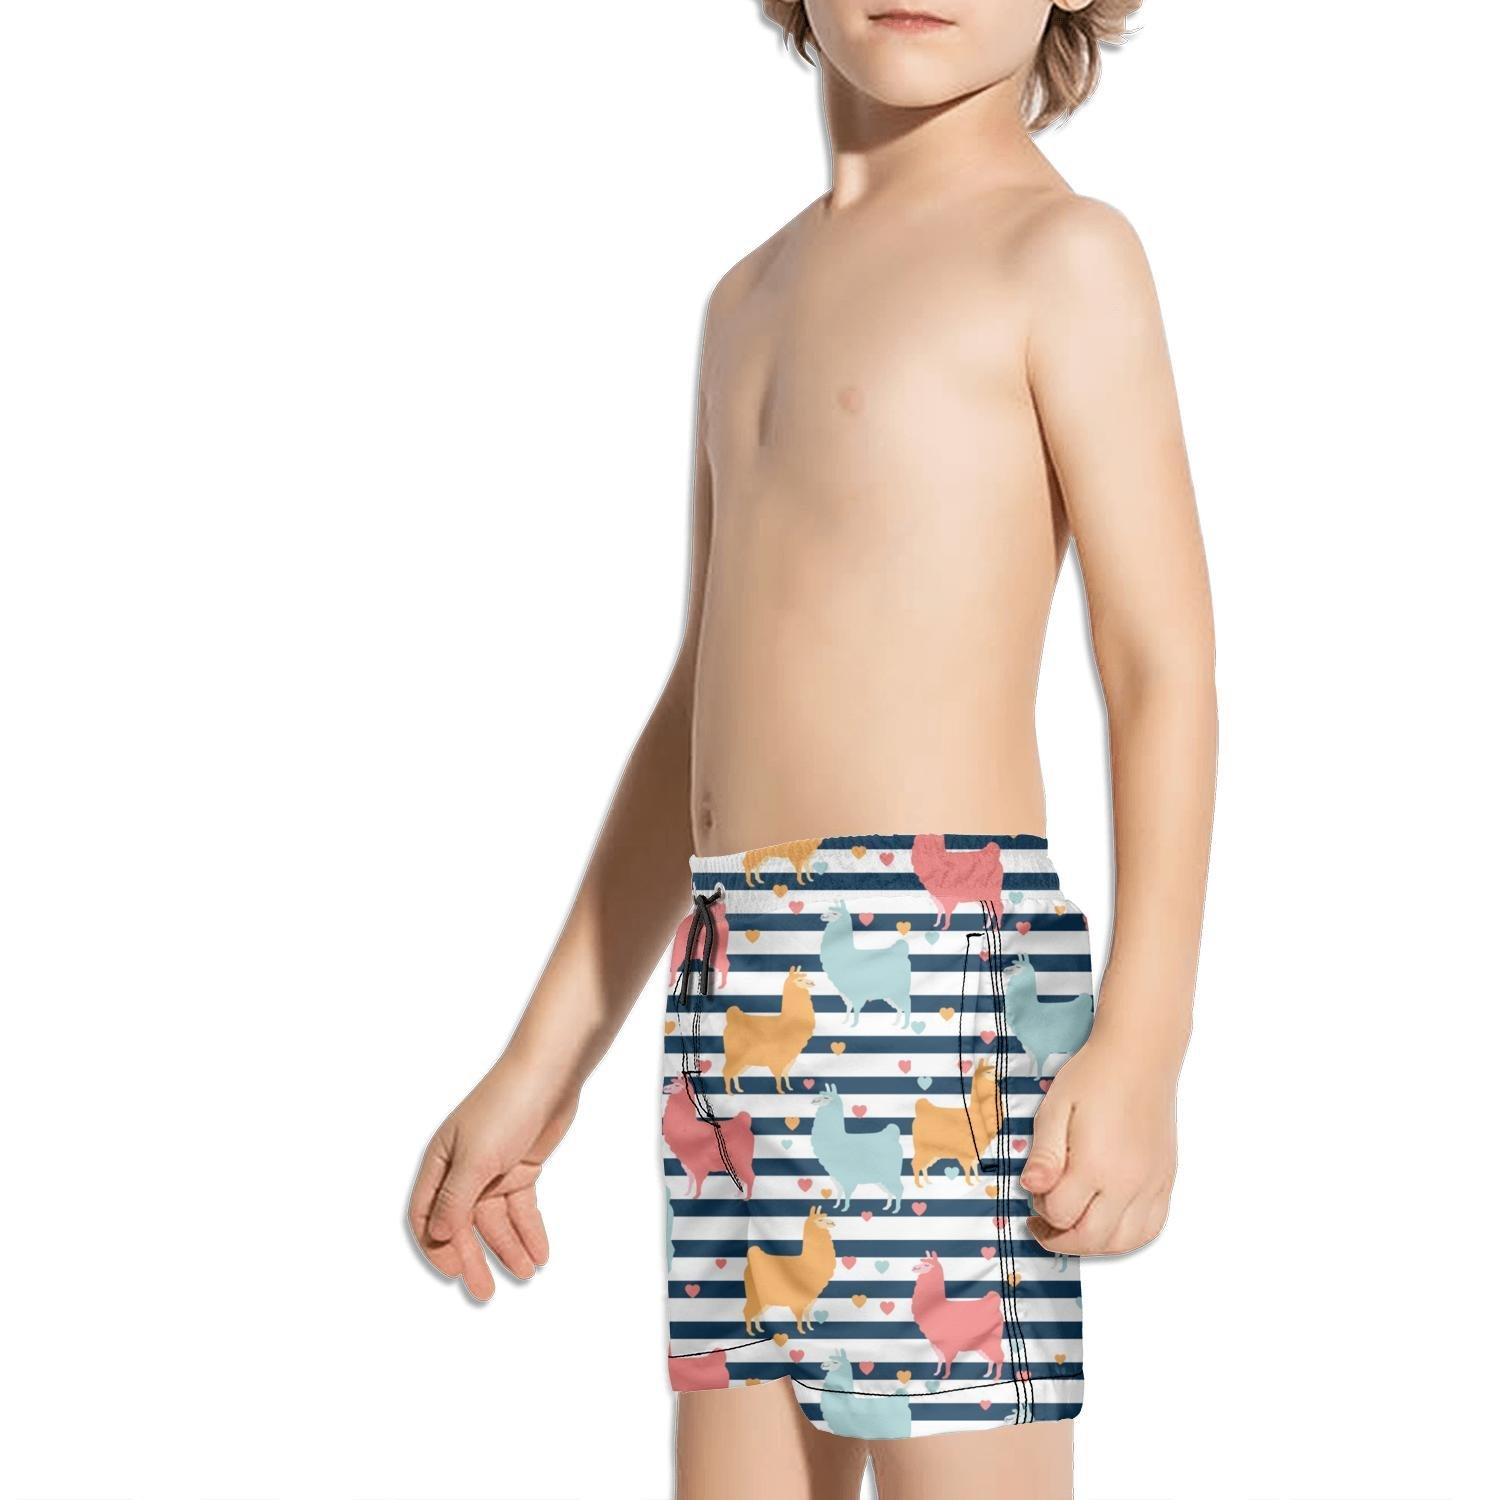 FullBo Colorful Alpaca Llama in blackk Strips Little Boys Short Swim Trunks Quick Dry Beach Shorts